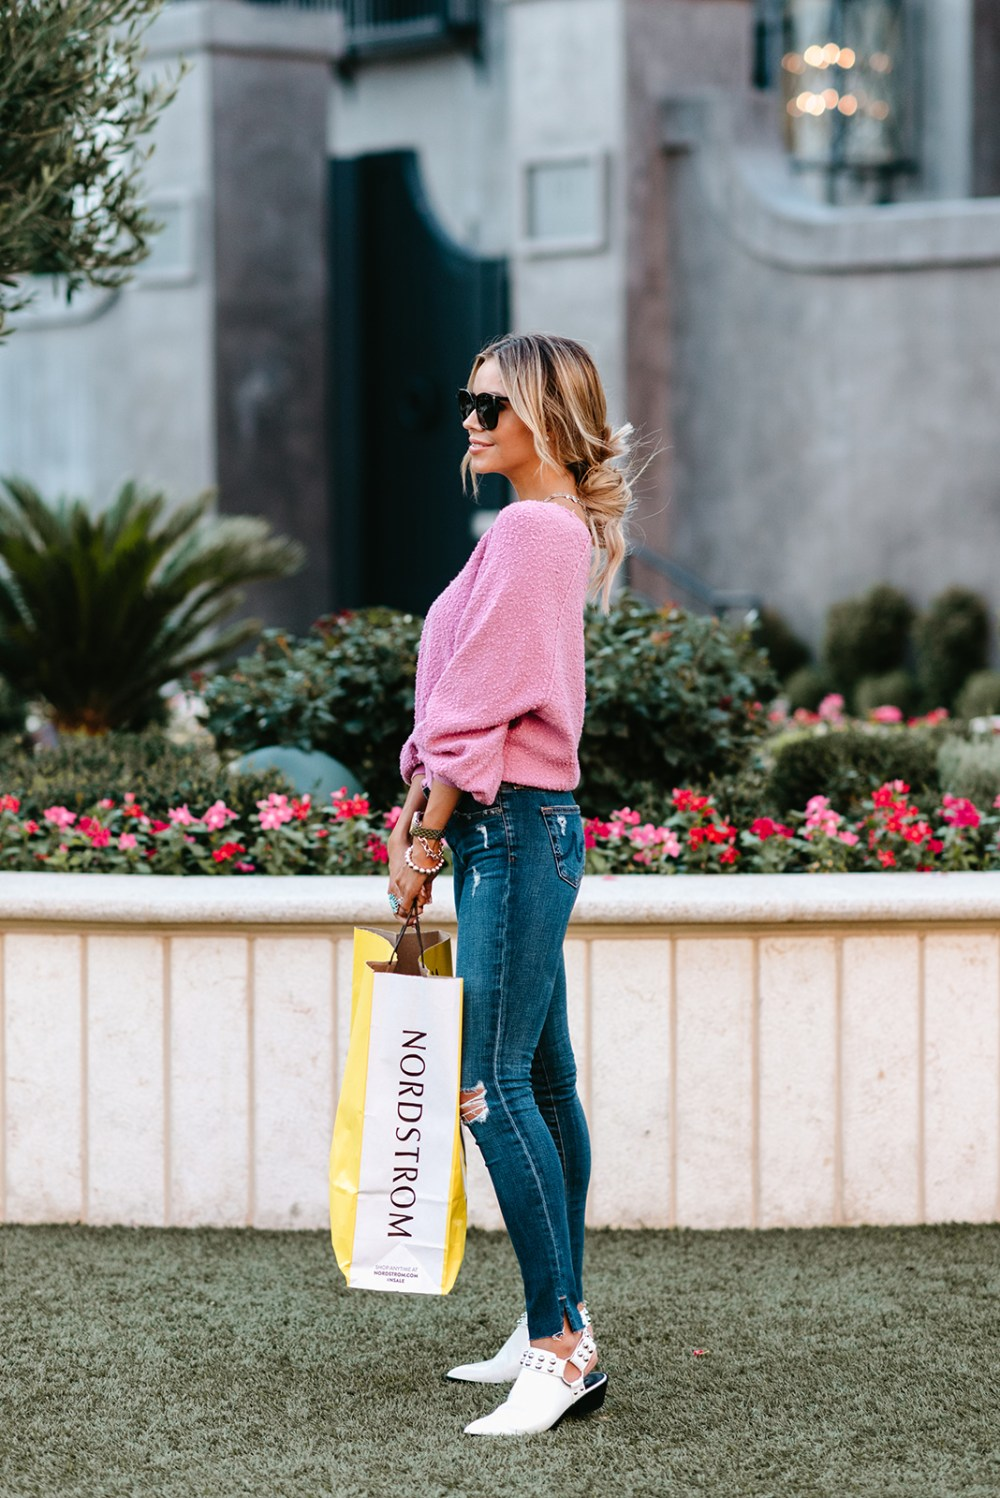 0eed2d3100c Shop my top picks from the Nordstrom Anniversary Sale 2018! These are some  amazing styles